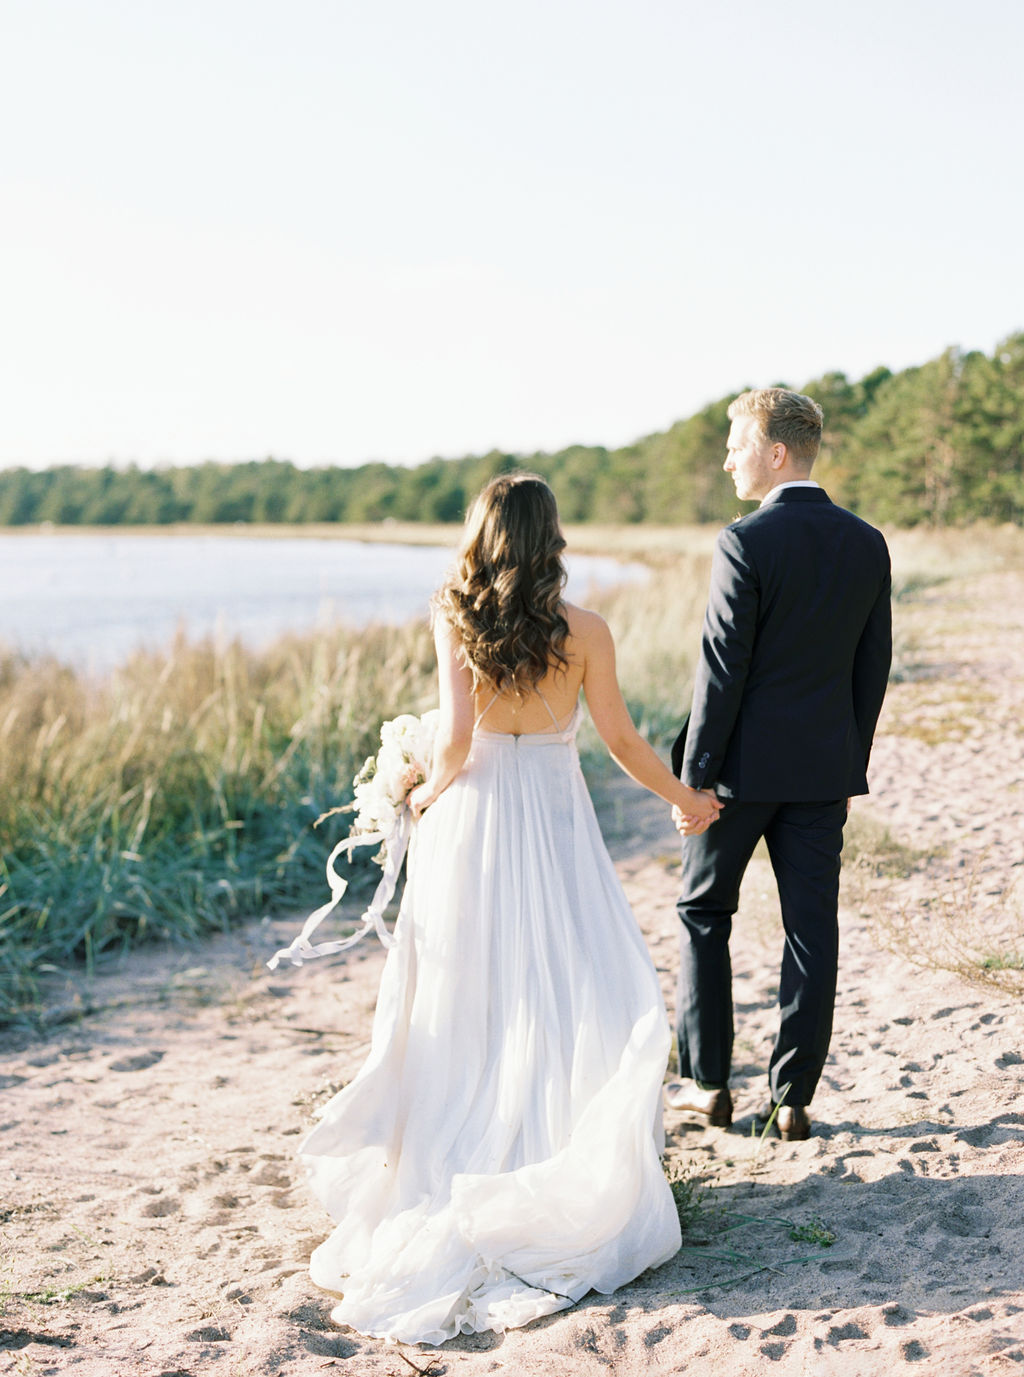 InspiredweddingshootinHanko-217